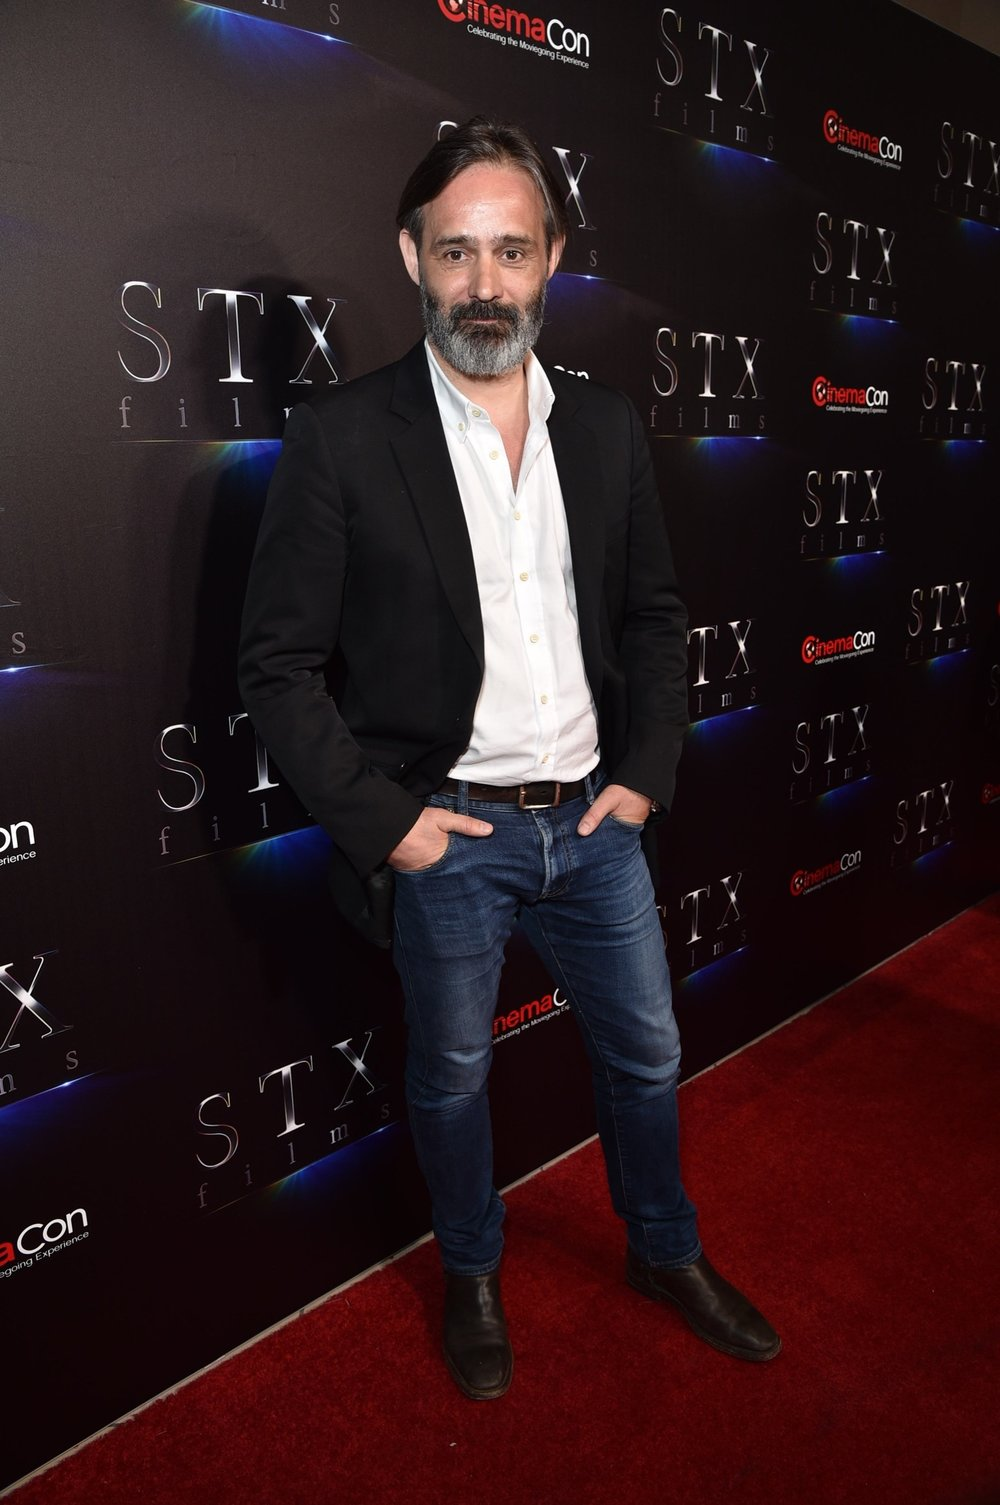 Director Baltasar Kormákur attends STXfilms' 2018 CinemaCon Presentation at The Colosseum of Caesars Palace, Las Vegas, NV Tuesday, April 24, 2018.